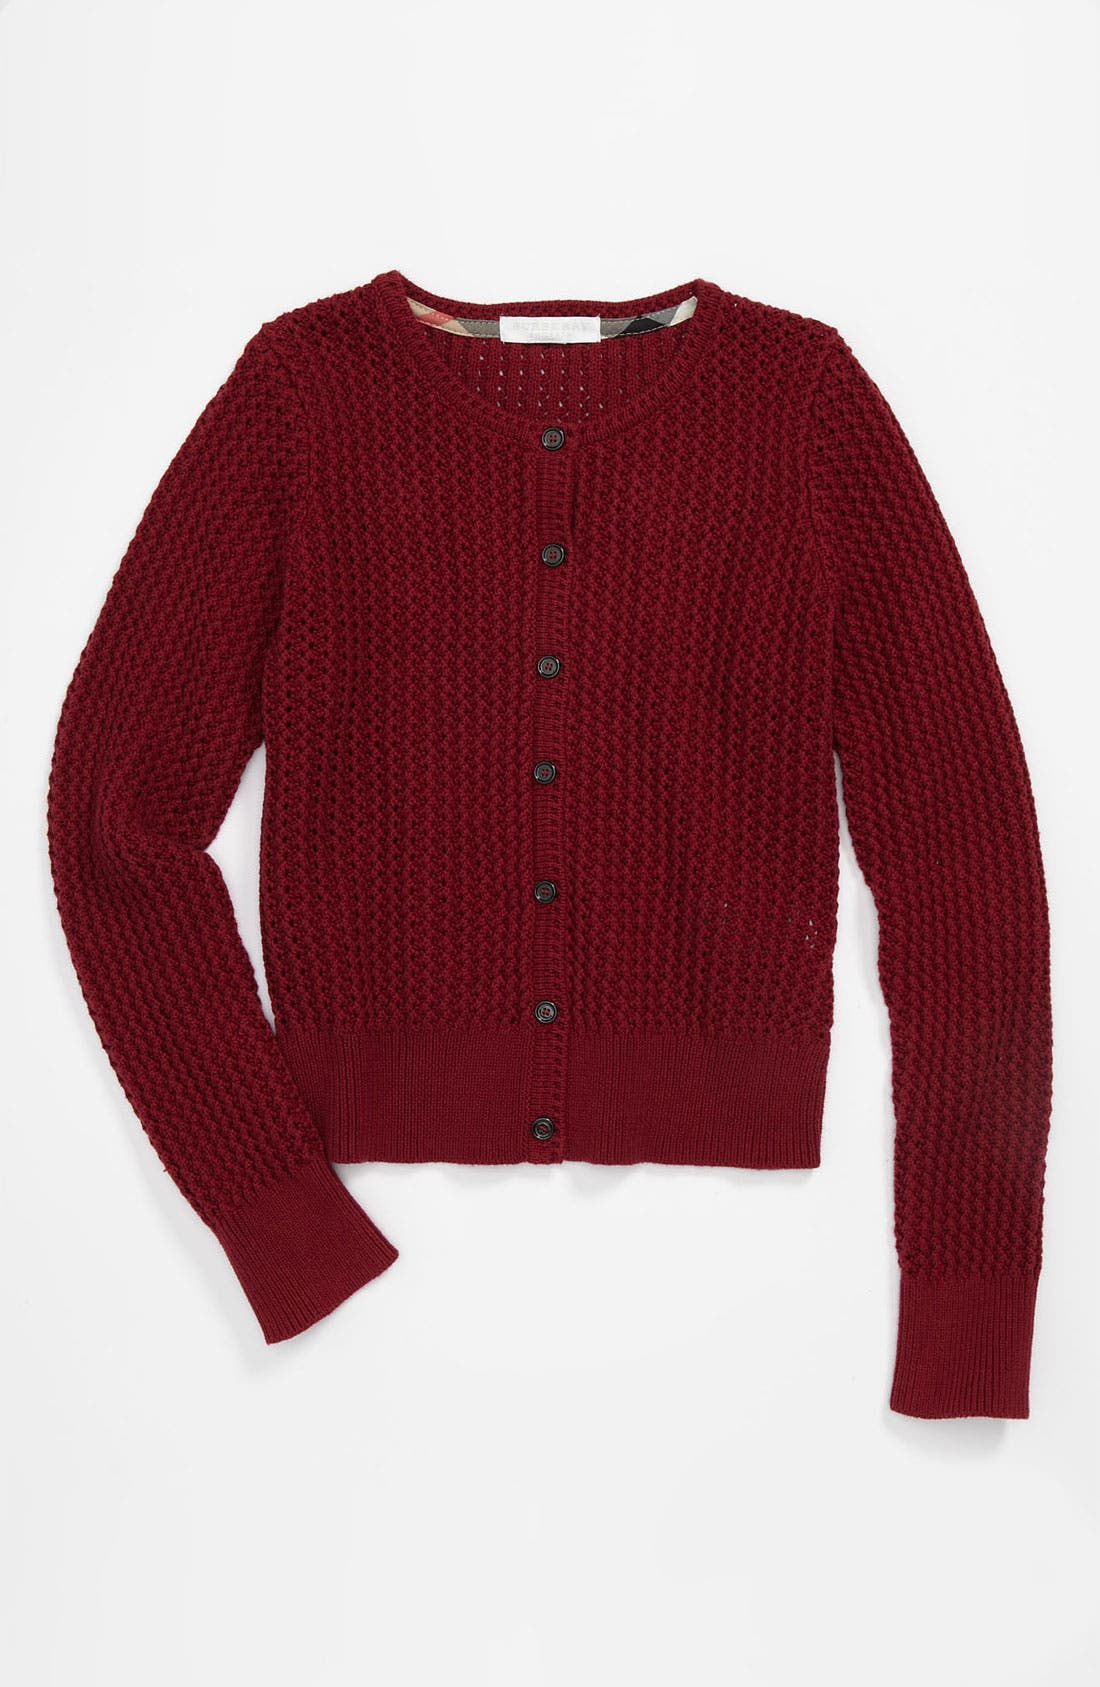 Alternate Image 1 Selected - Burberry 'Tobalt' Cardigan (Little Girls & Big Girls)